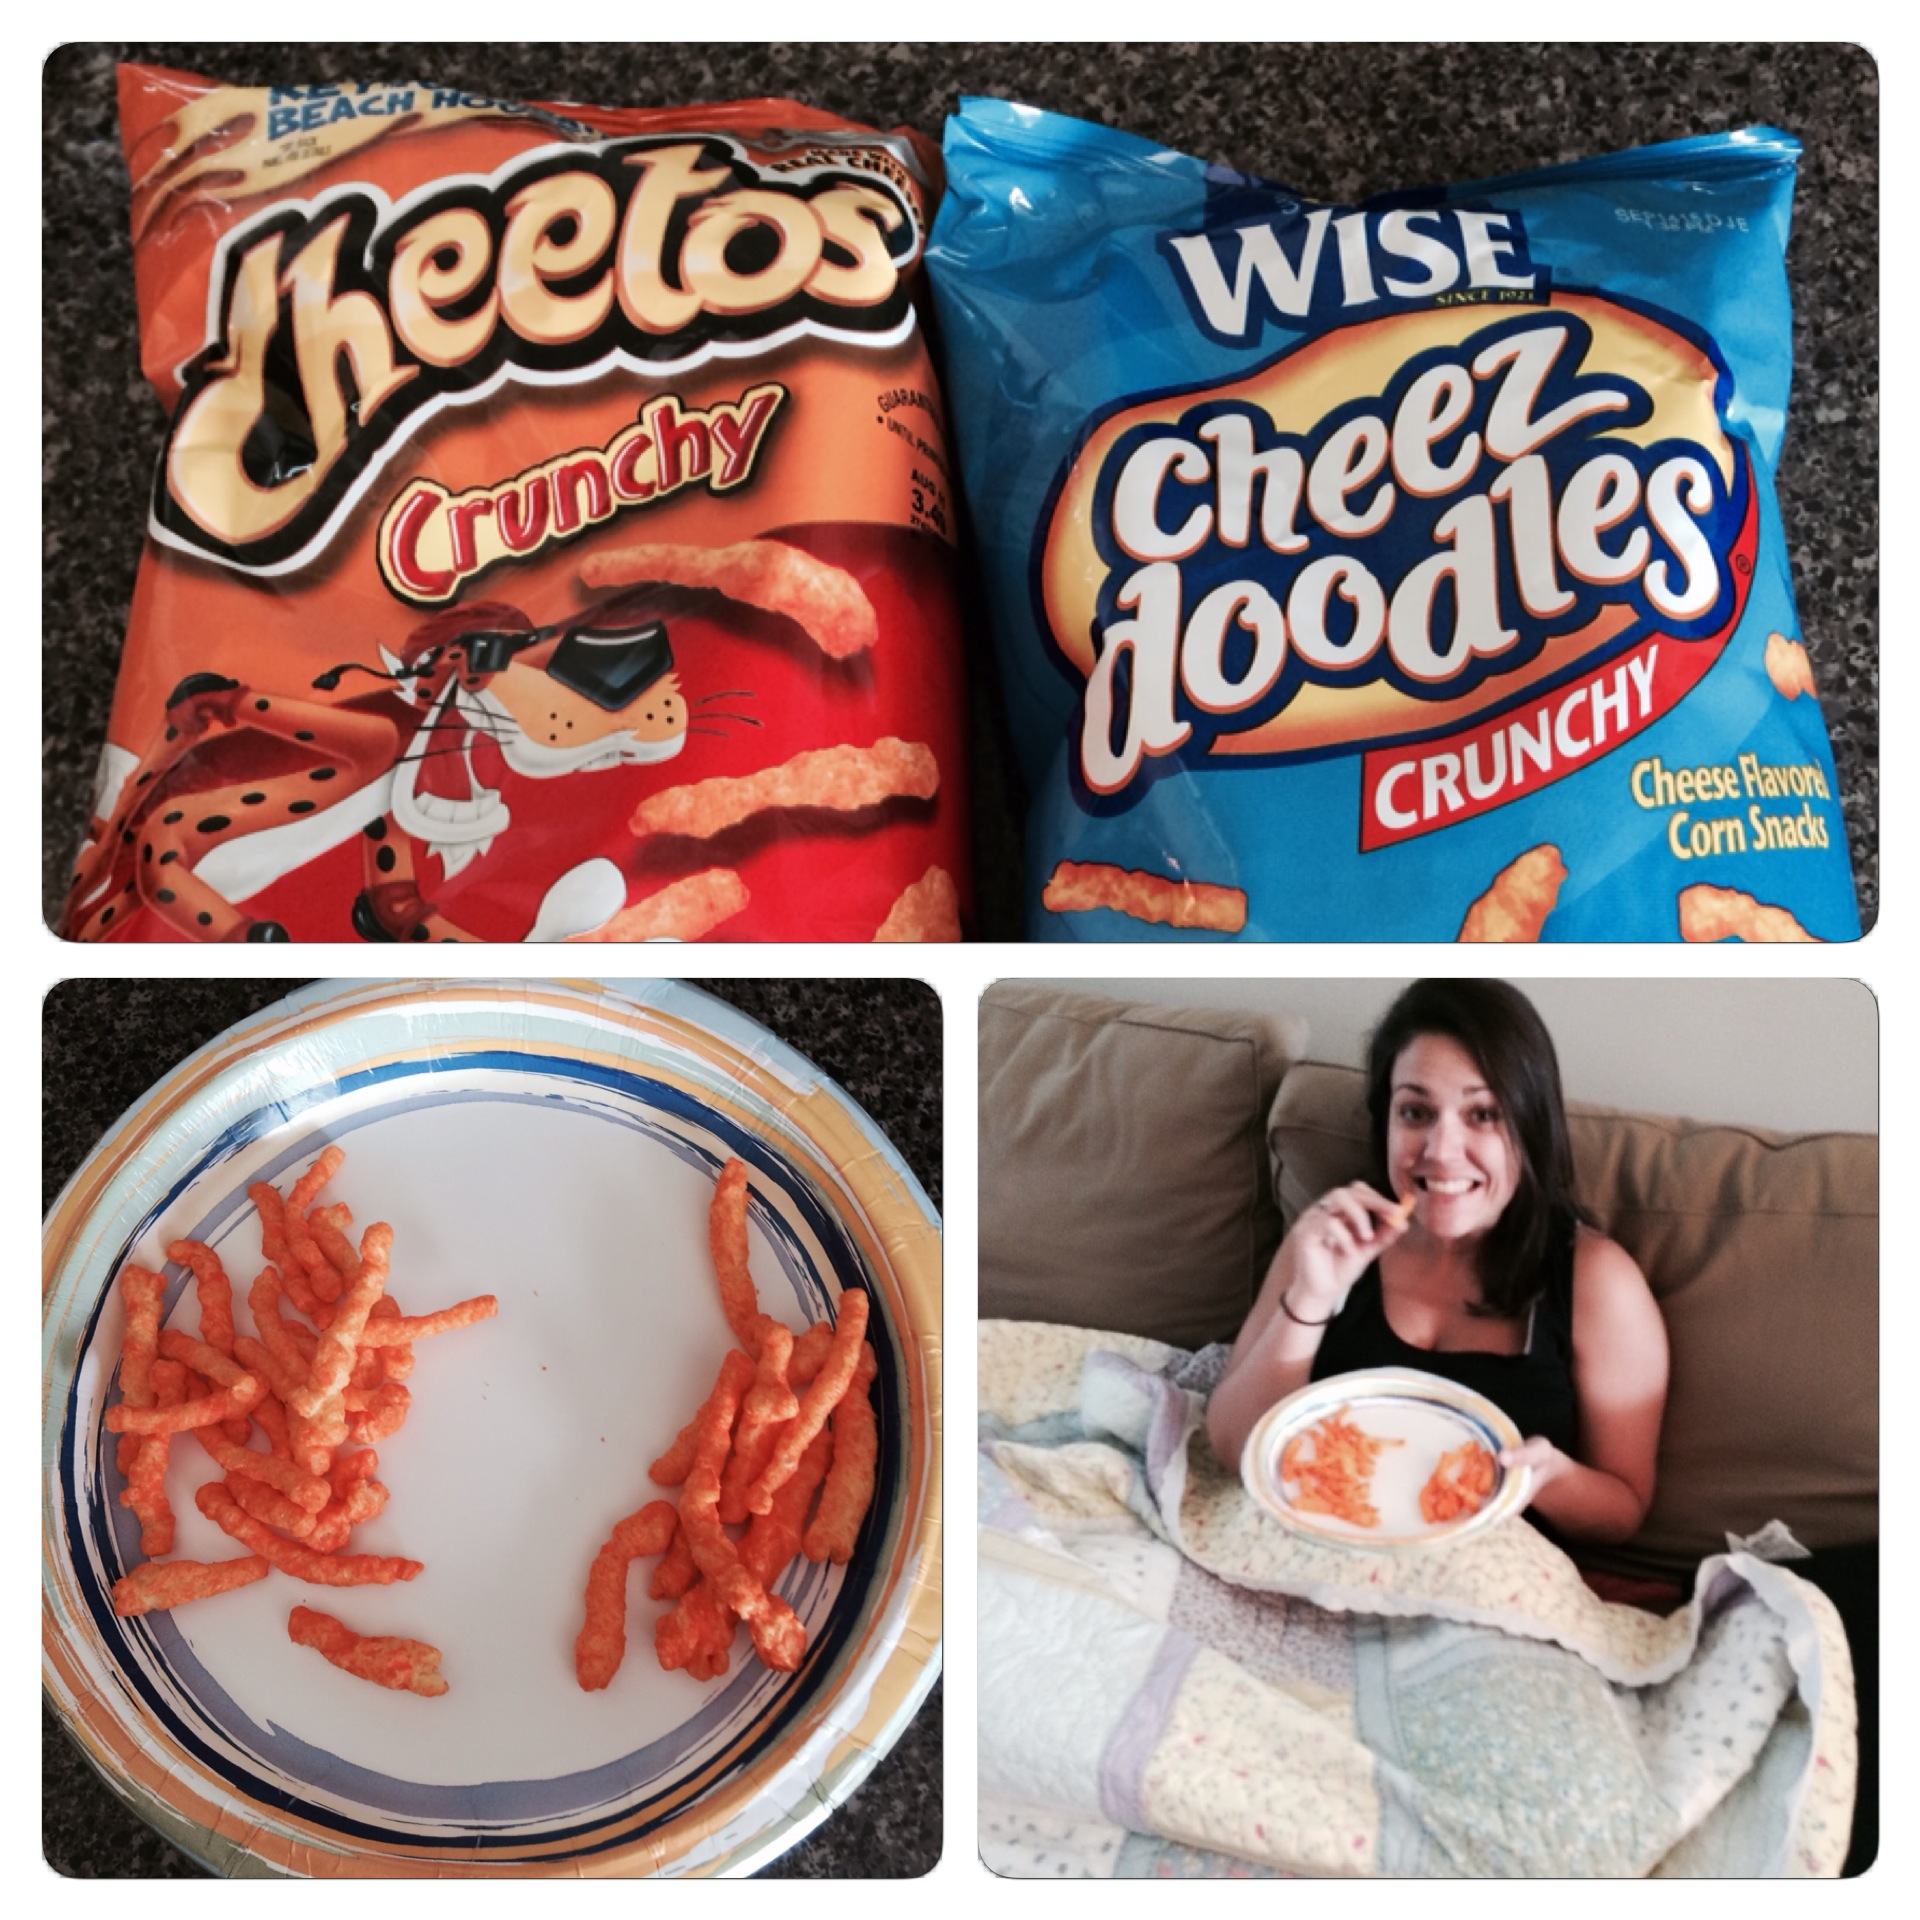 On the plate, the real Cheetos are on the left.